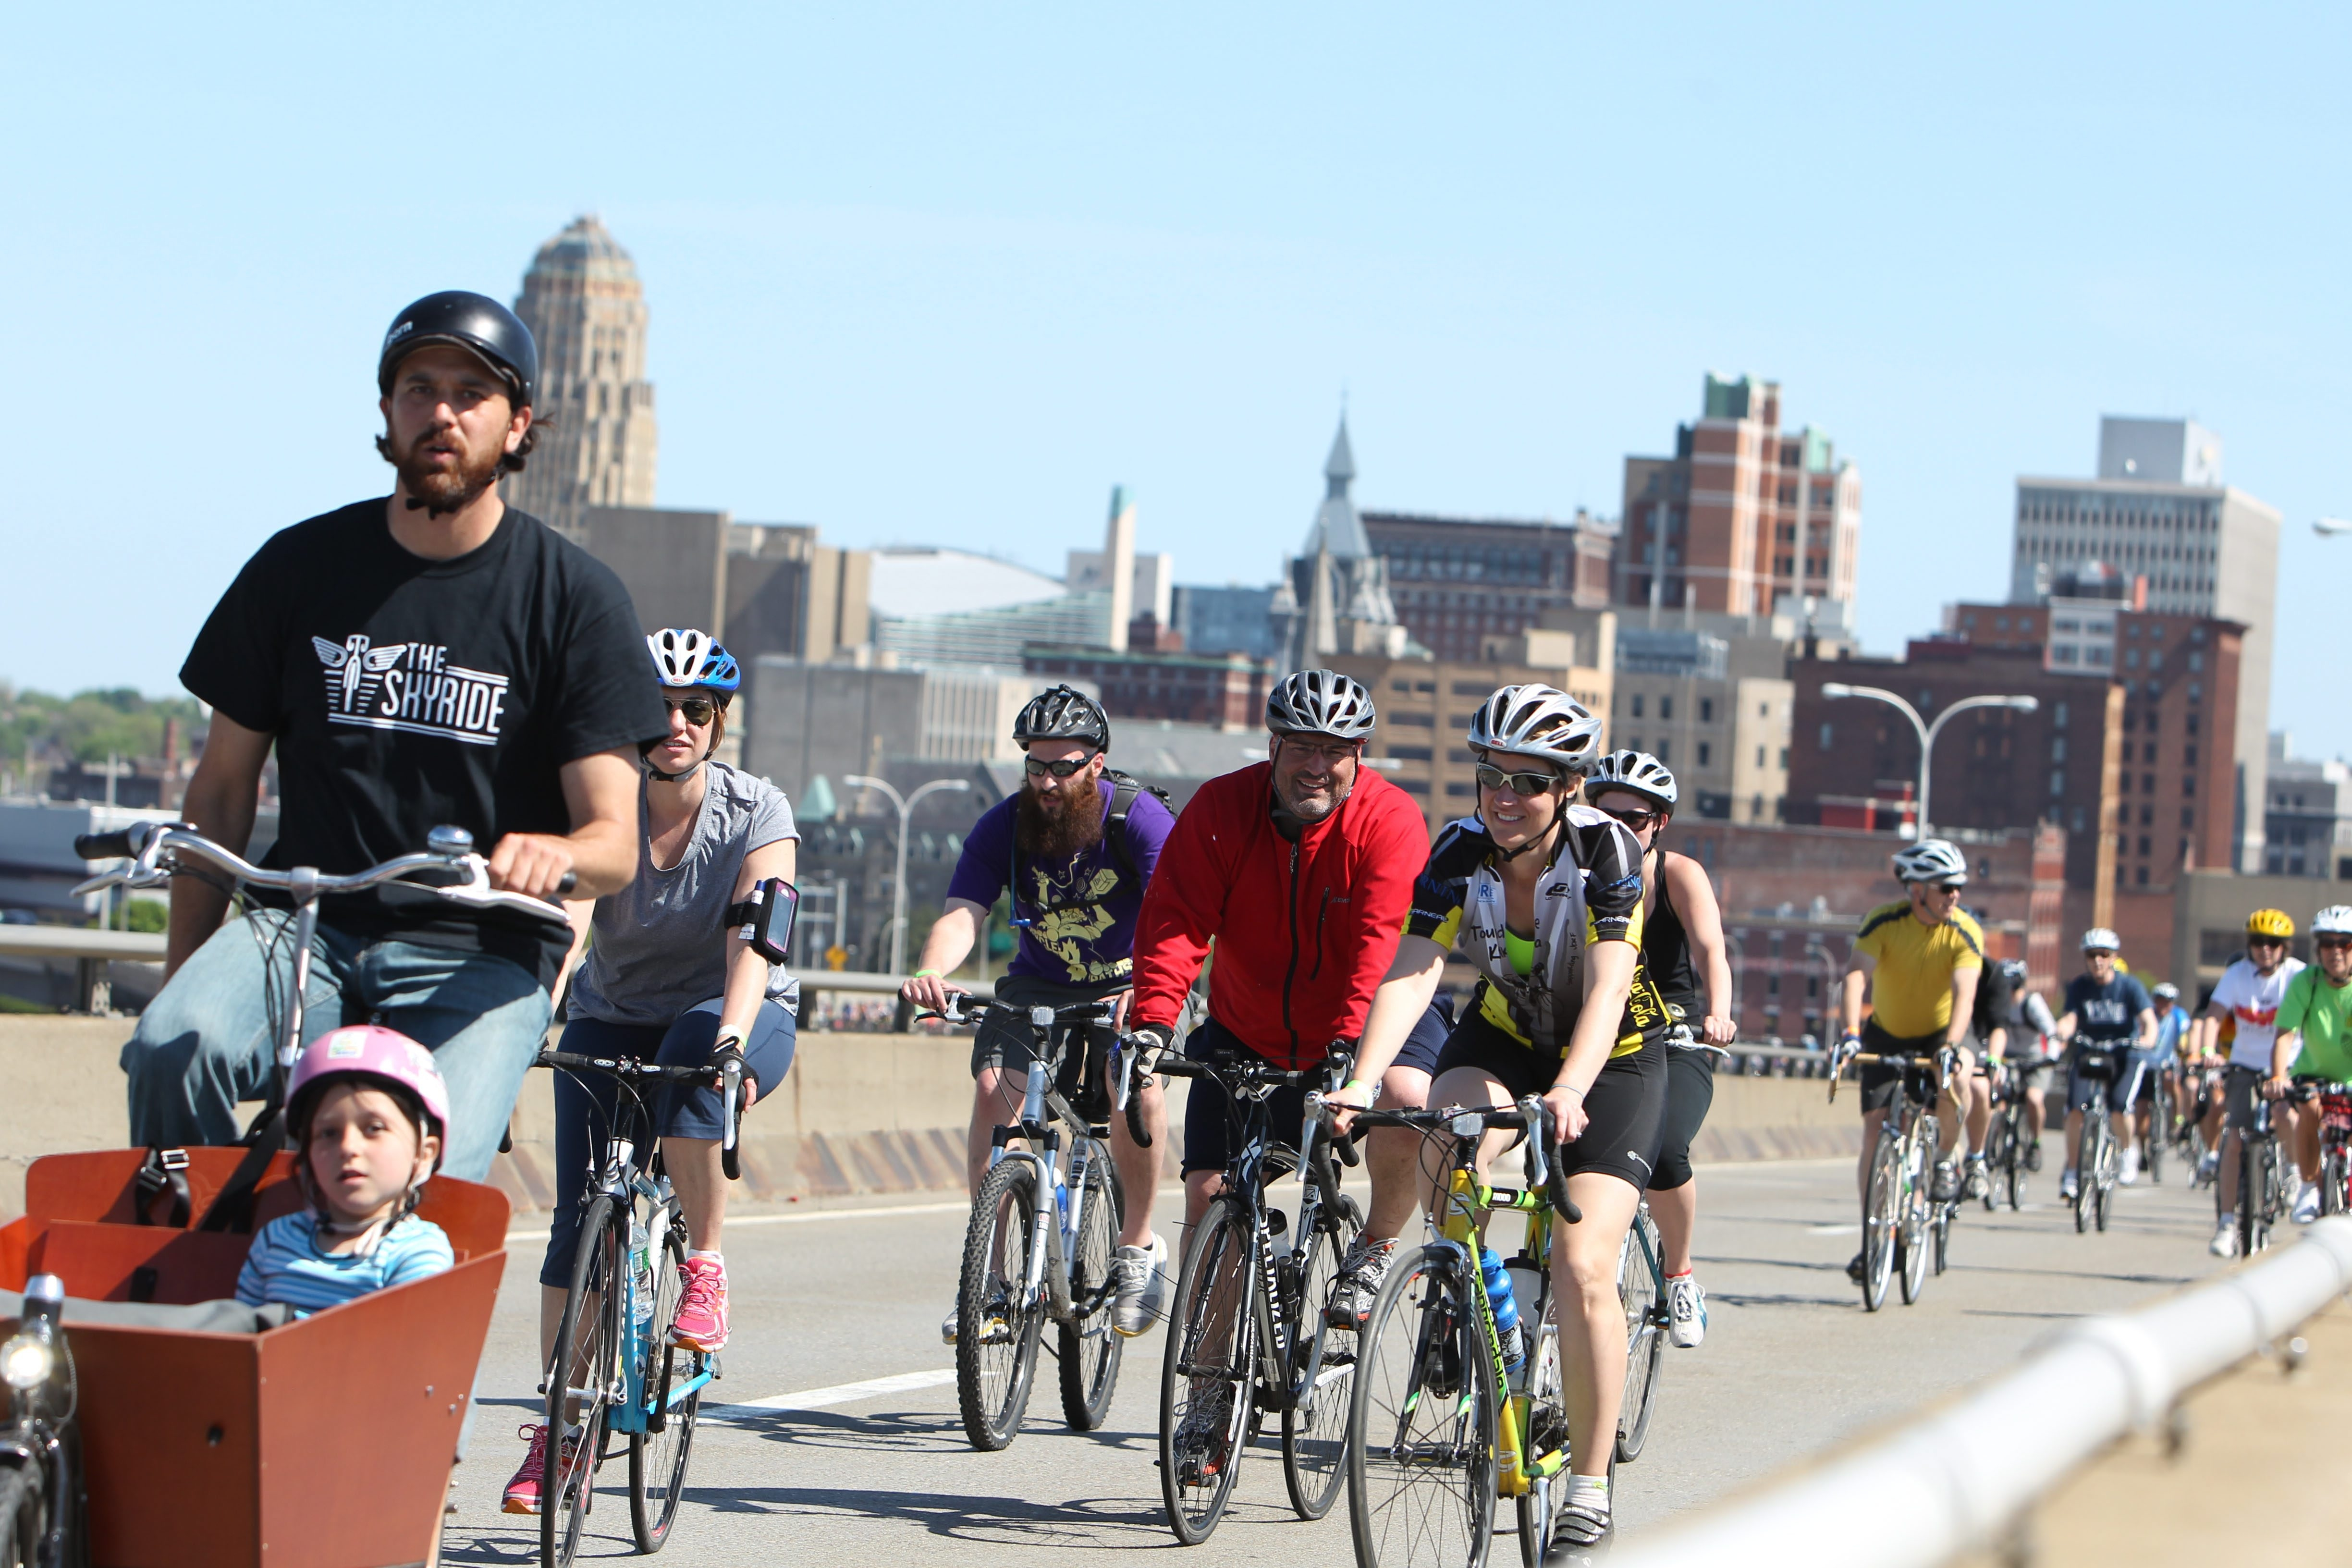 Justin Booth led about 750 bicyclists in GObike Buffalo's first Skyride,  a tour of local historic locations, in May.